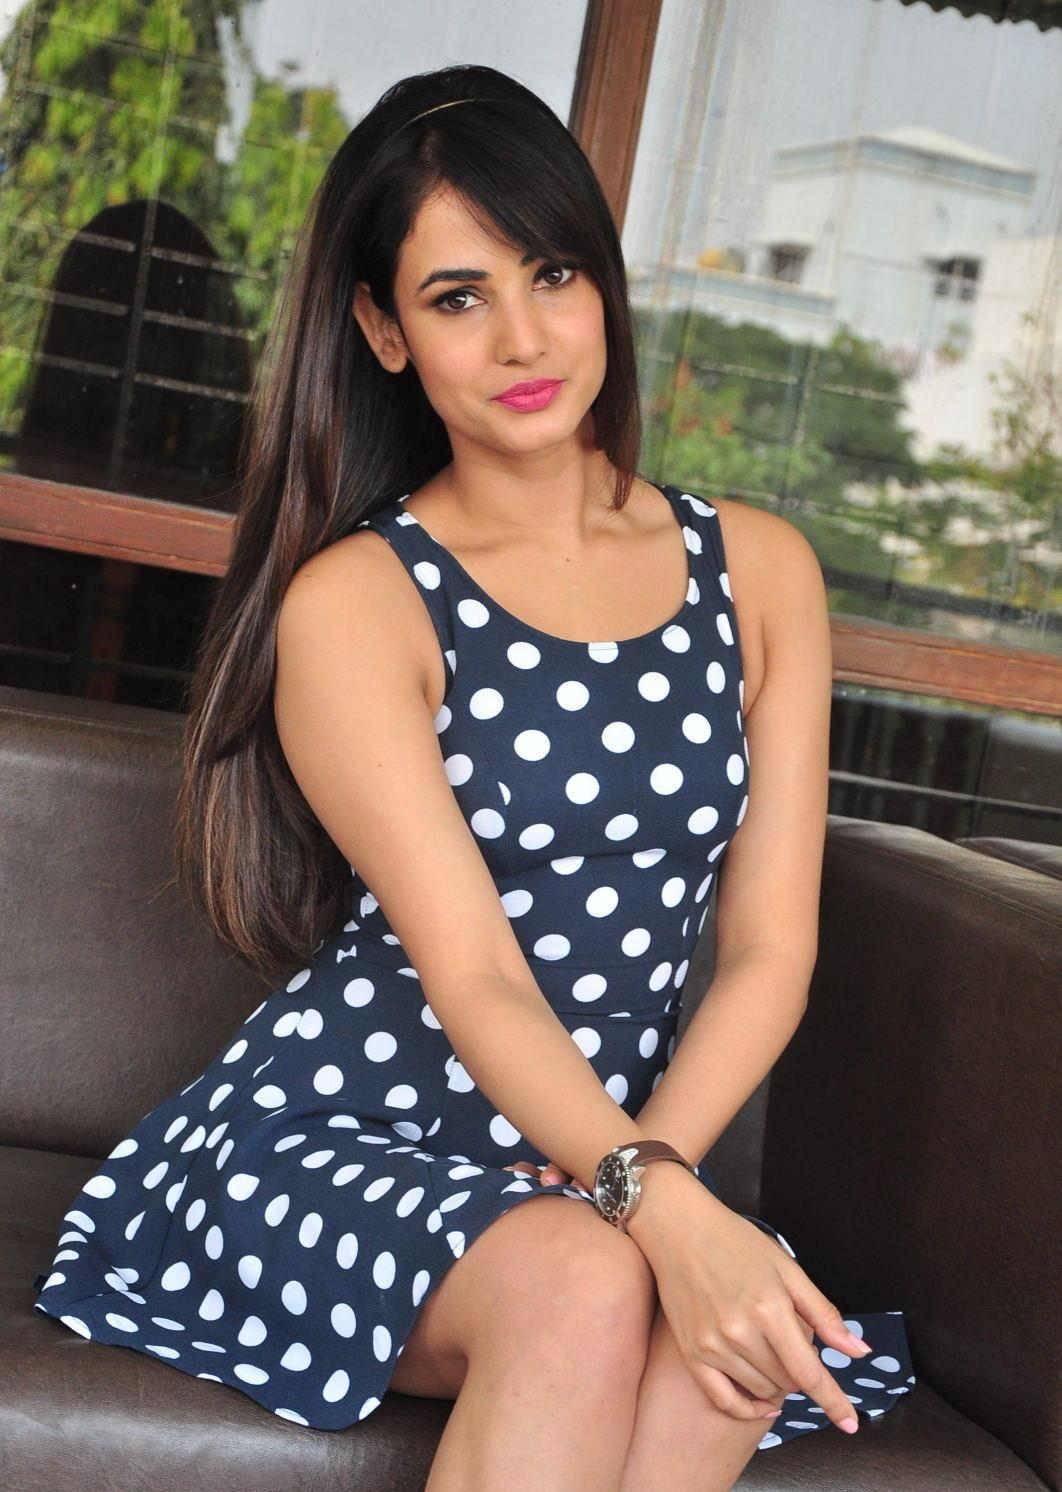 Sonal Chauhan Looks Irresistibly Sexy In A Black Polka Dot -5071